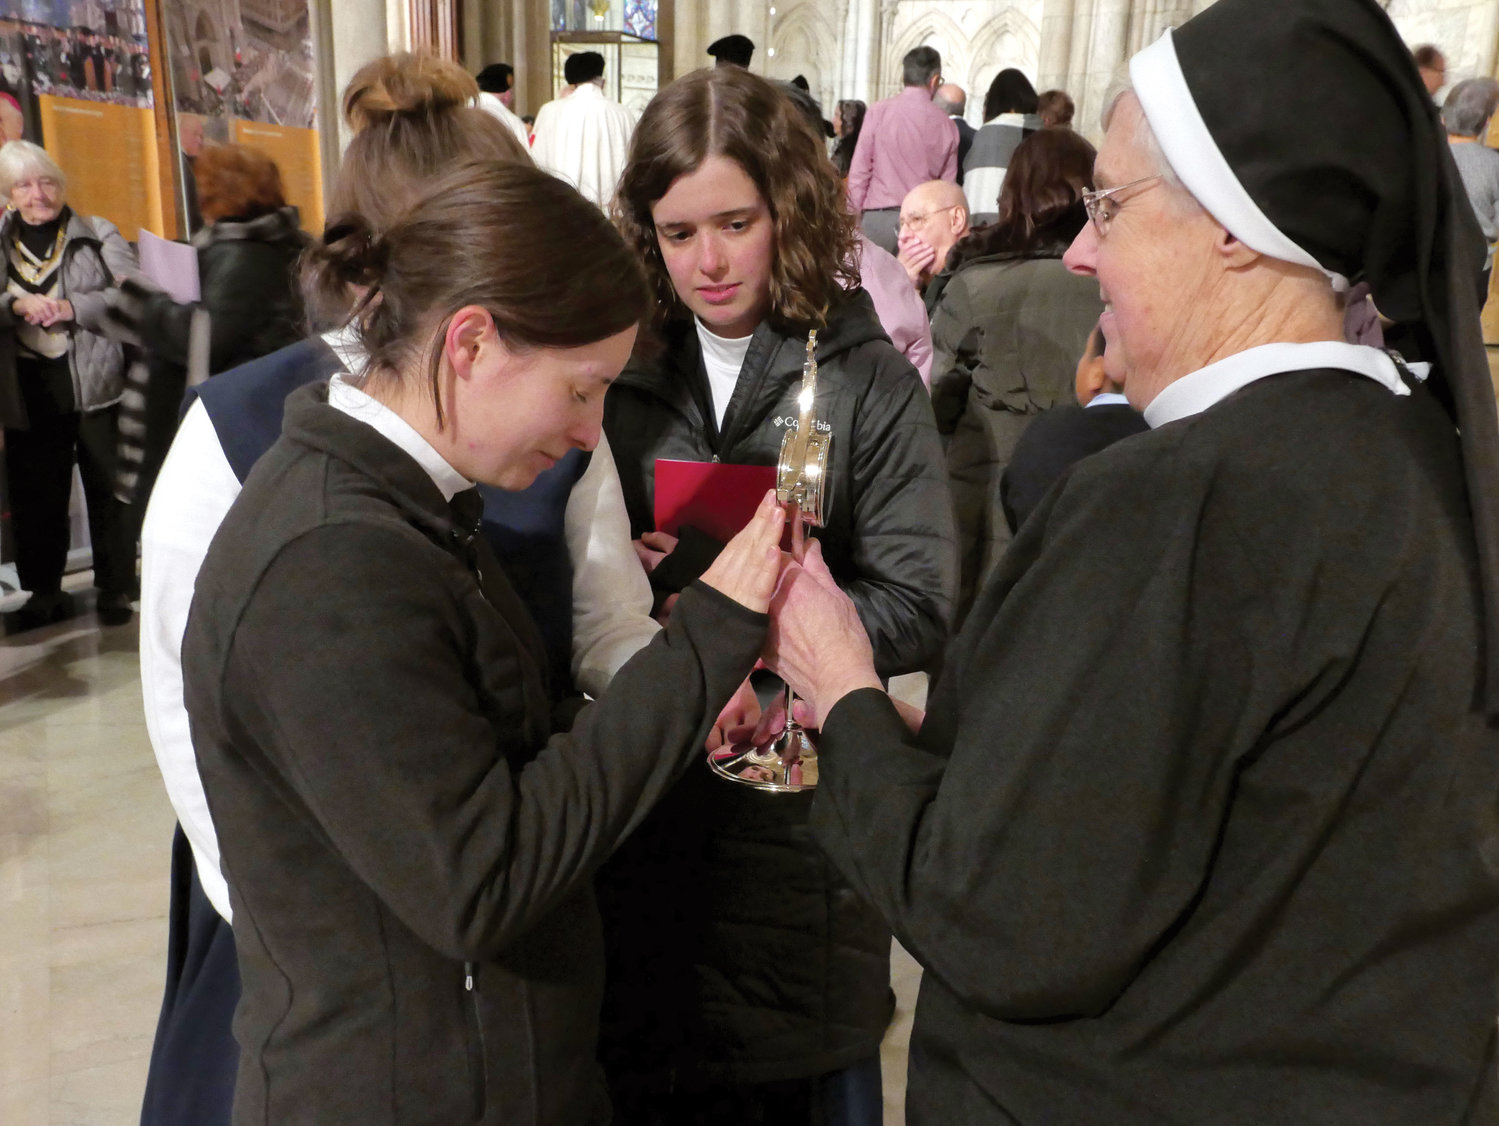 Sister Ritamary Schulz, A.S.C.J., provincial superior for the U.S. Province, holds Blessed Clelia's reliquary before a postulant in prayer.